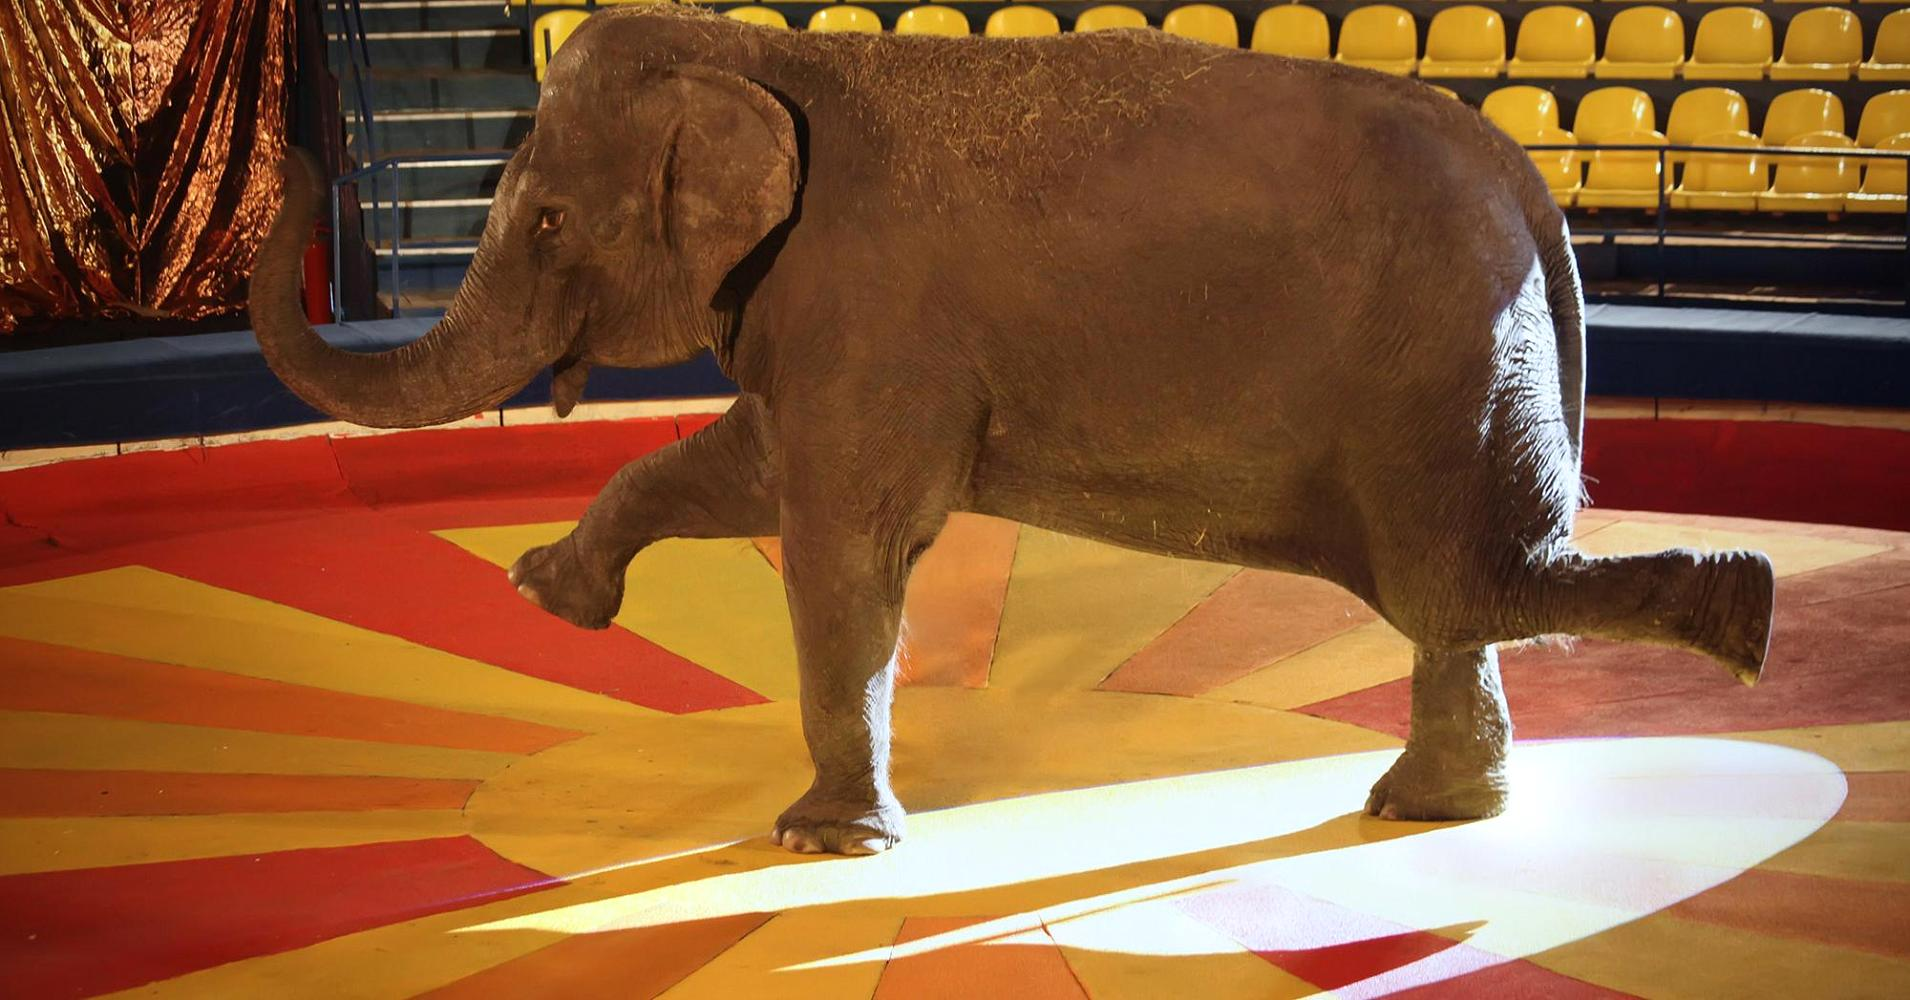 It 39 S Time We Address The Elephant In The Room At Every Health Care Conference Fan